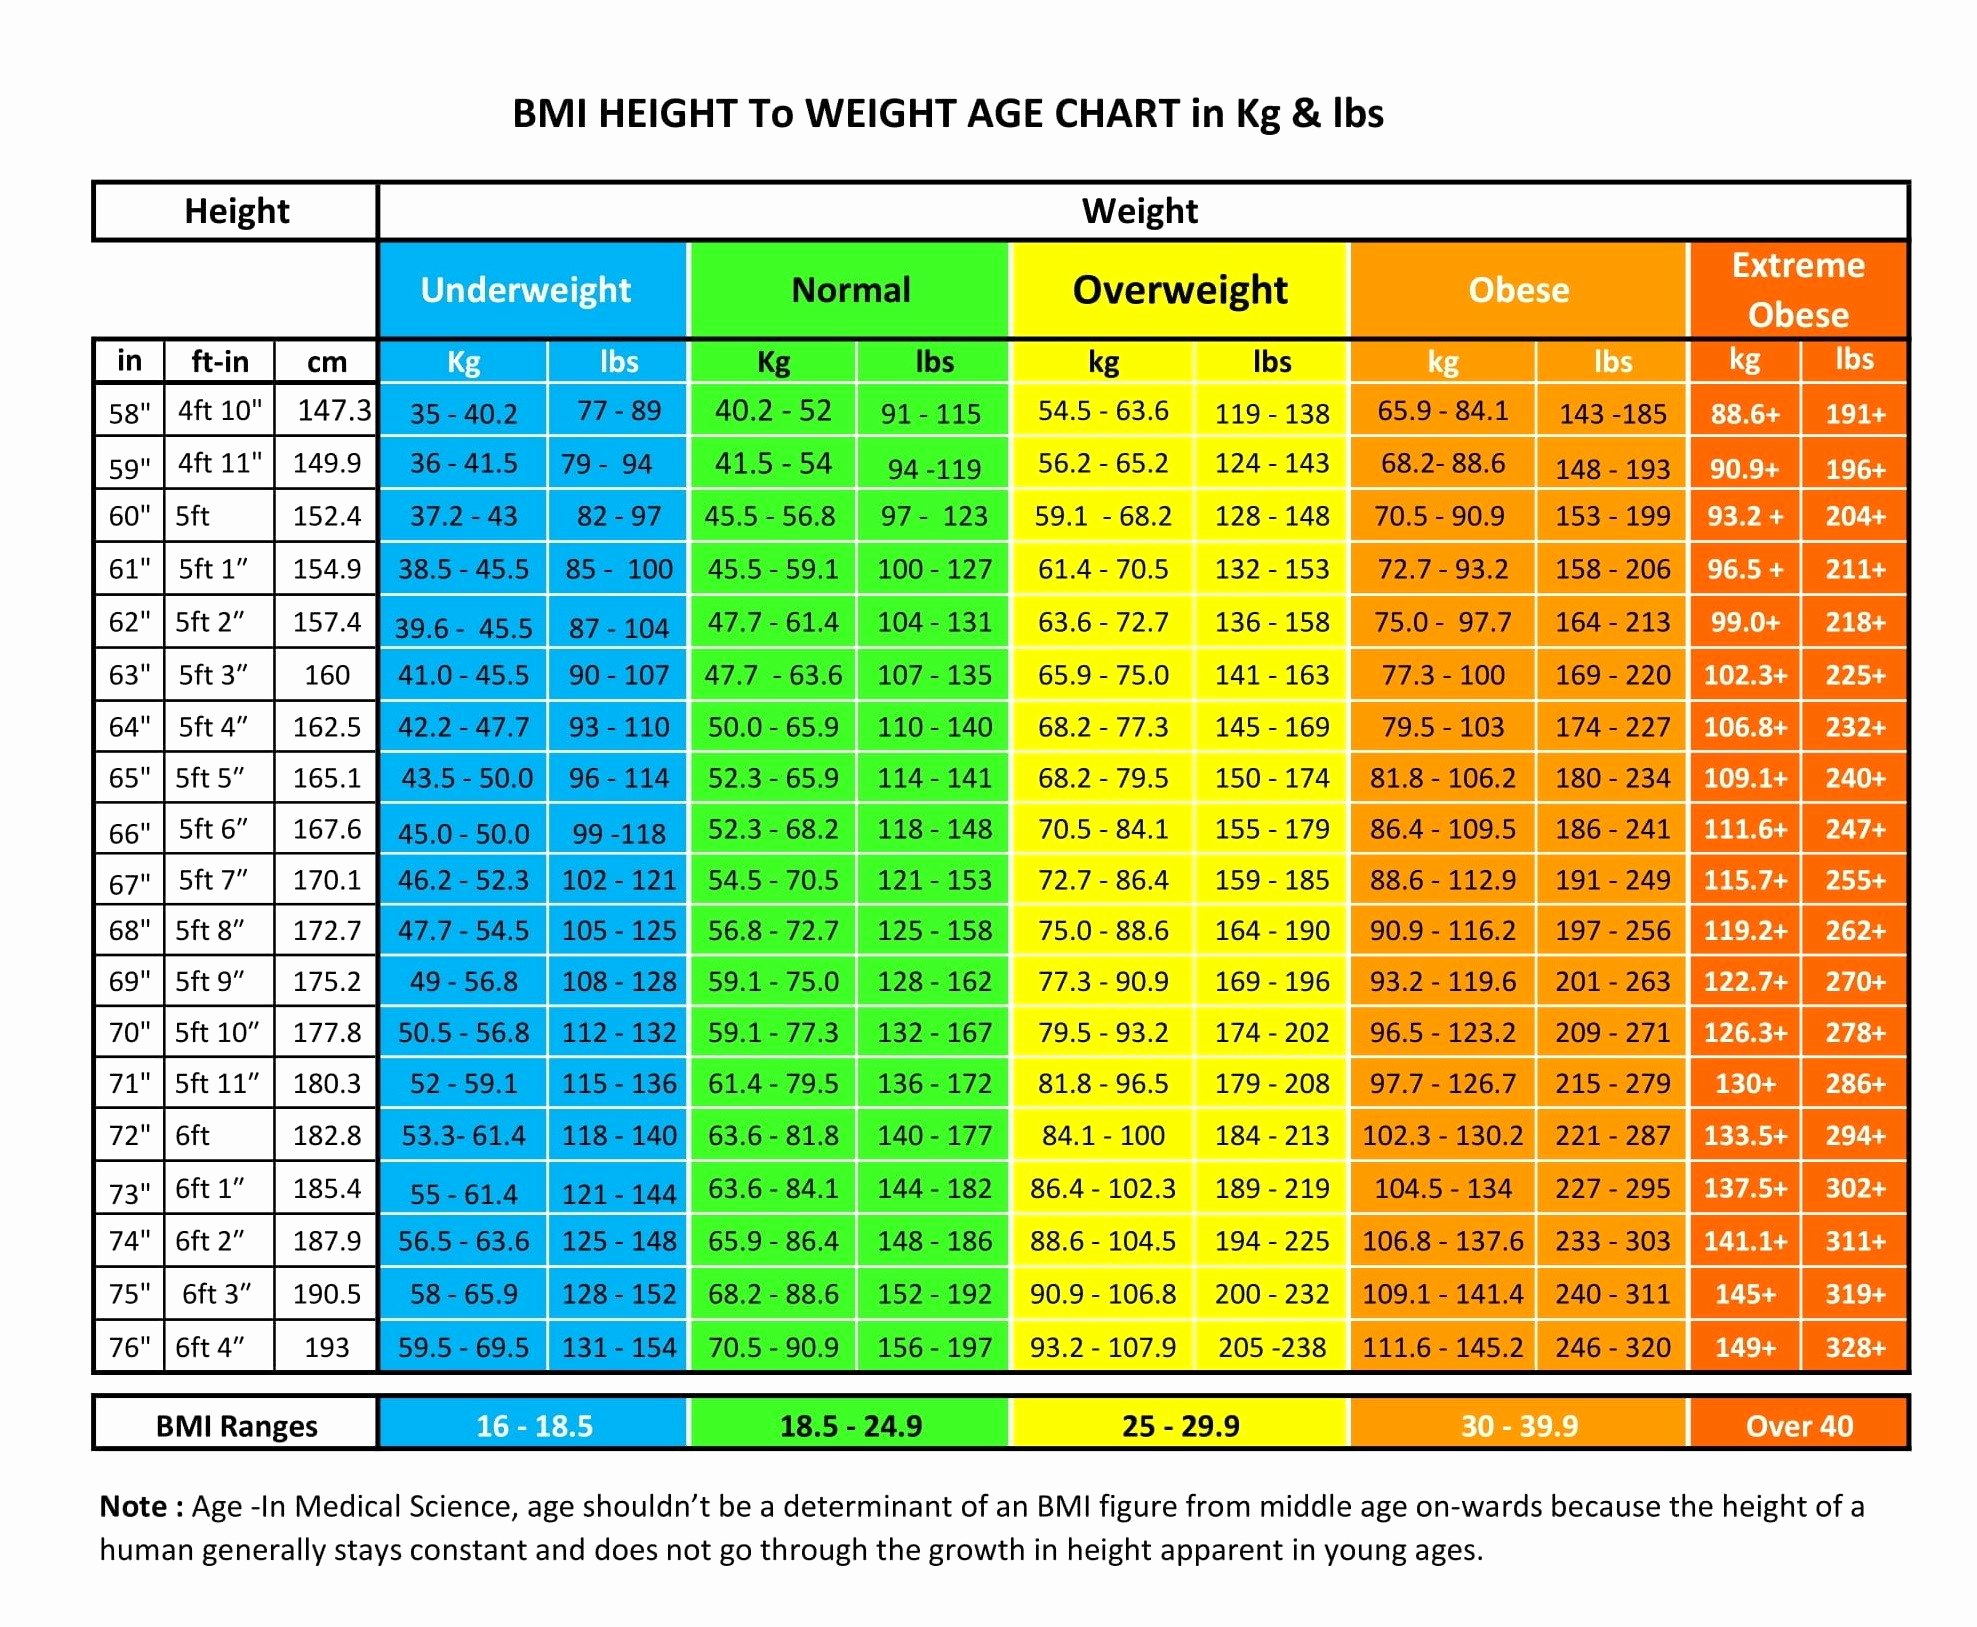 Age and Weight Chart Beautiful Bmi Height to Weight Age Chart for Male & Female